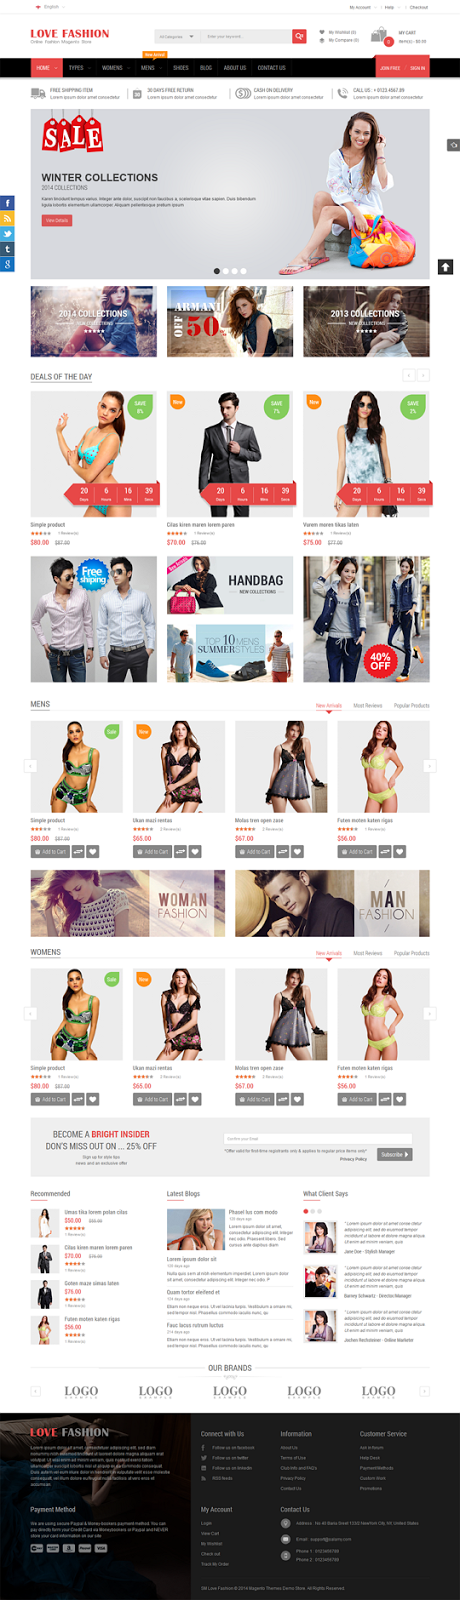 Musthaves & Fashion shop je online. - m 93